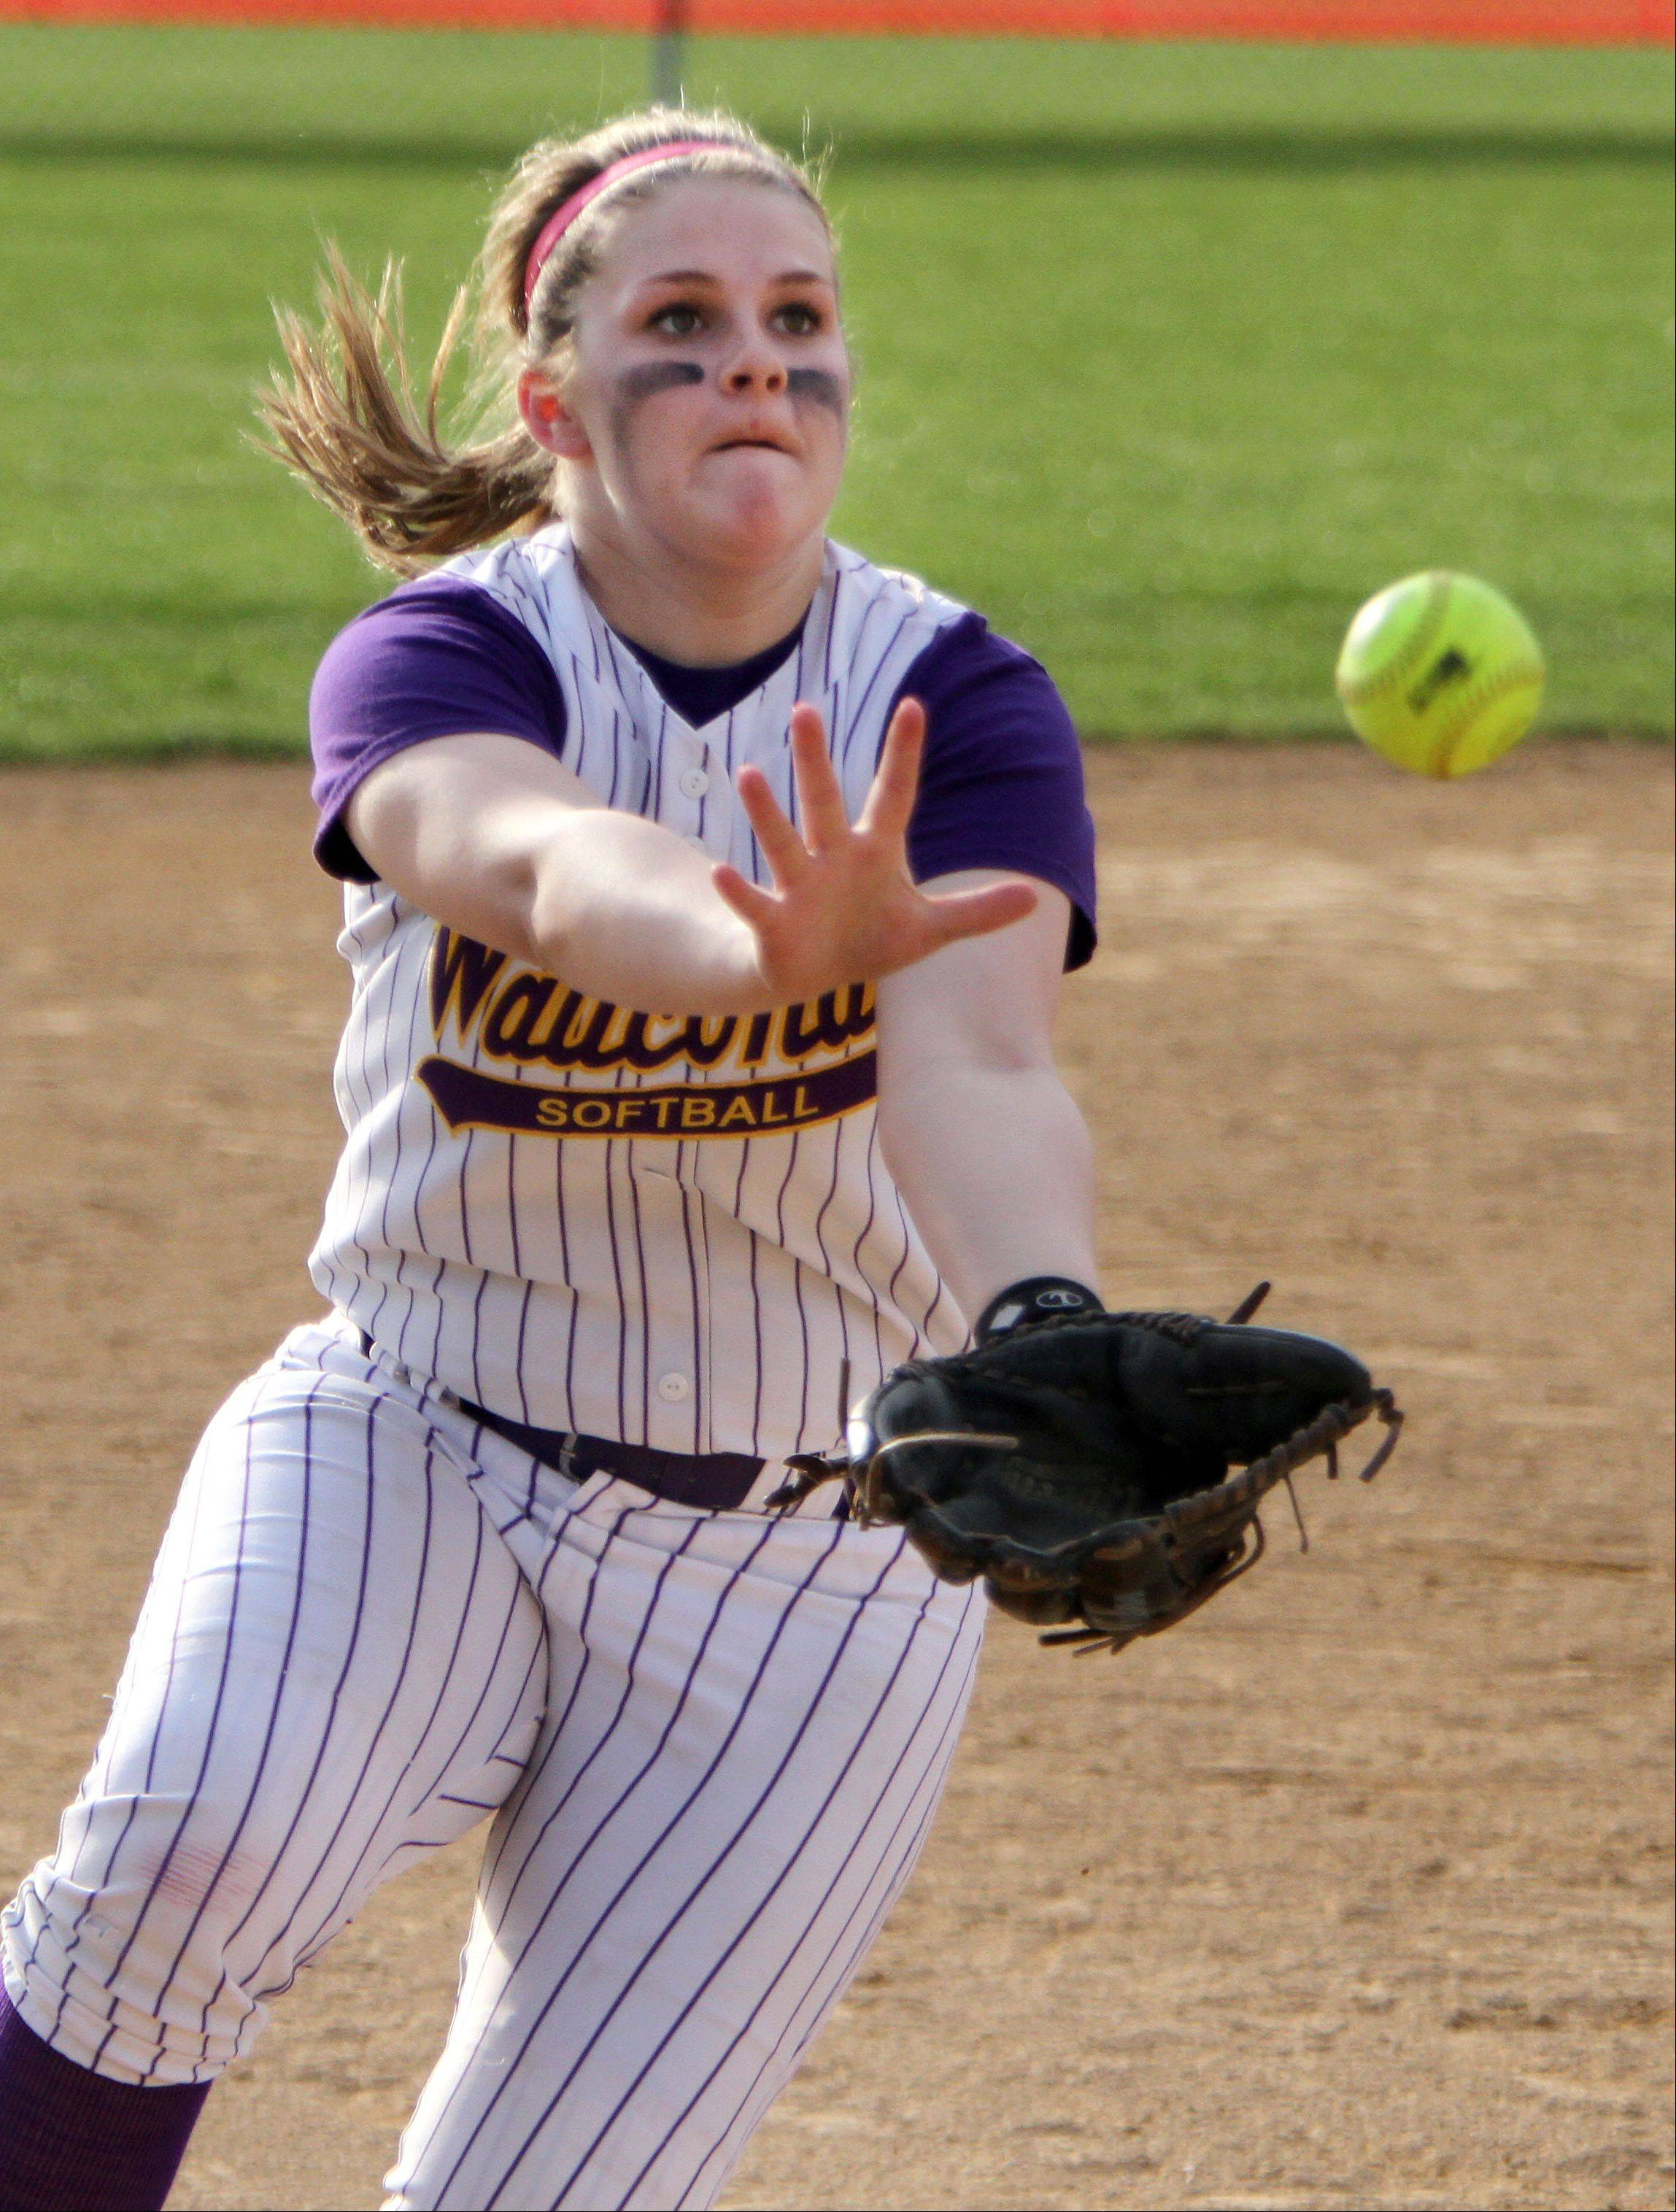 Wauconda's Brooke Sefcik makes a diving catch in the infield Monday at Grant.